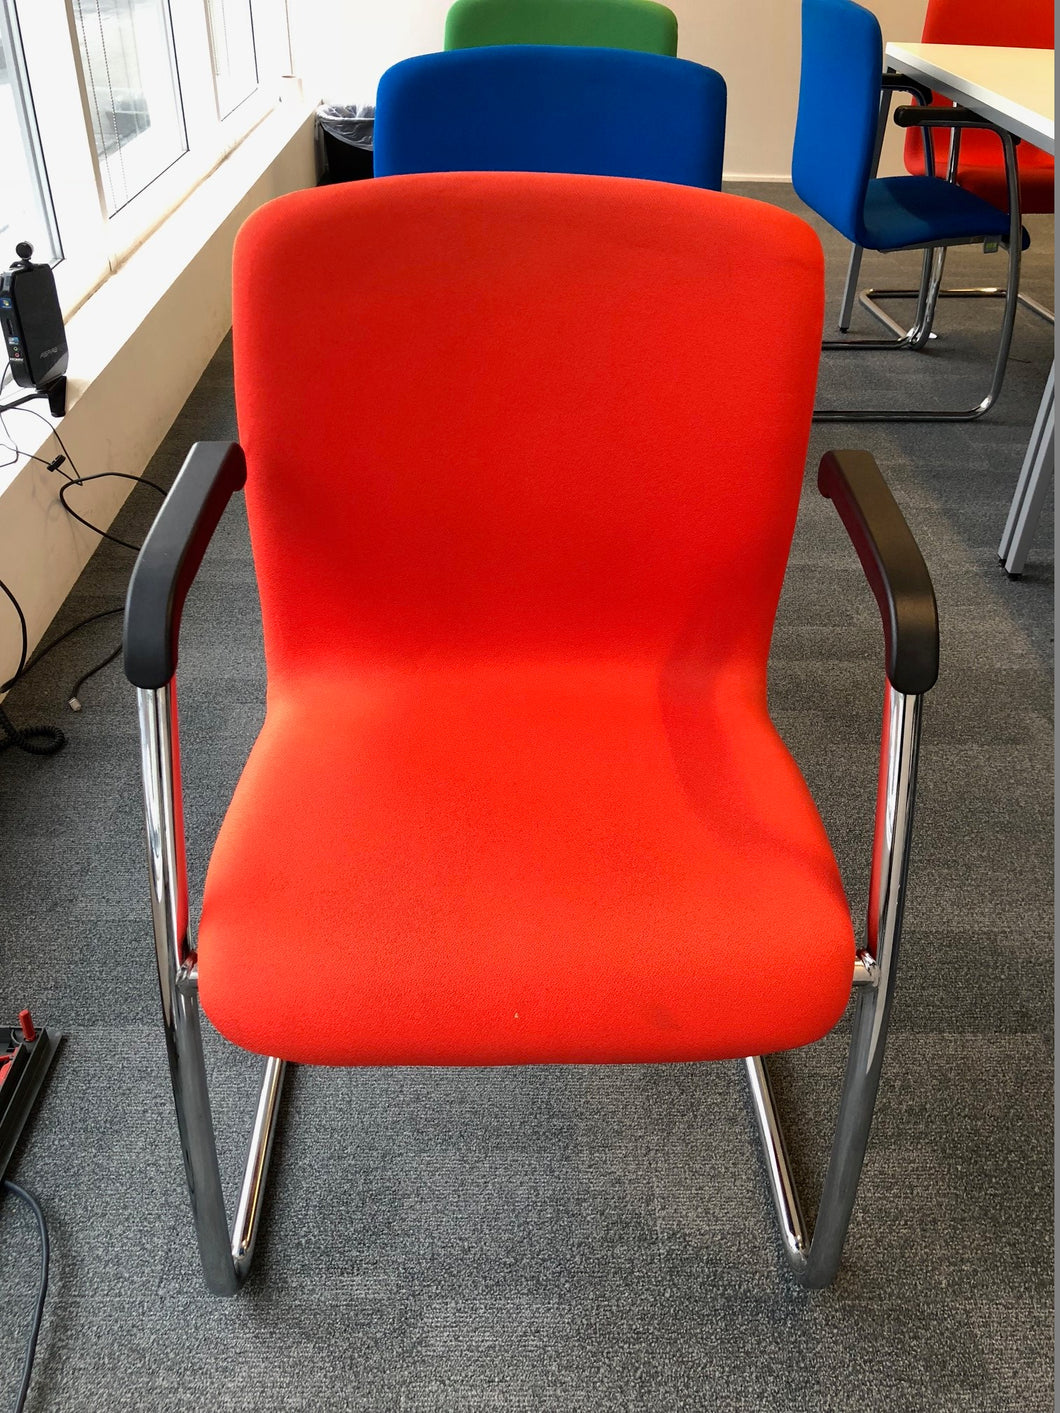 Red Meeting/Conference Chair With Chrome Finish - Flogit2us.com